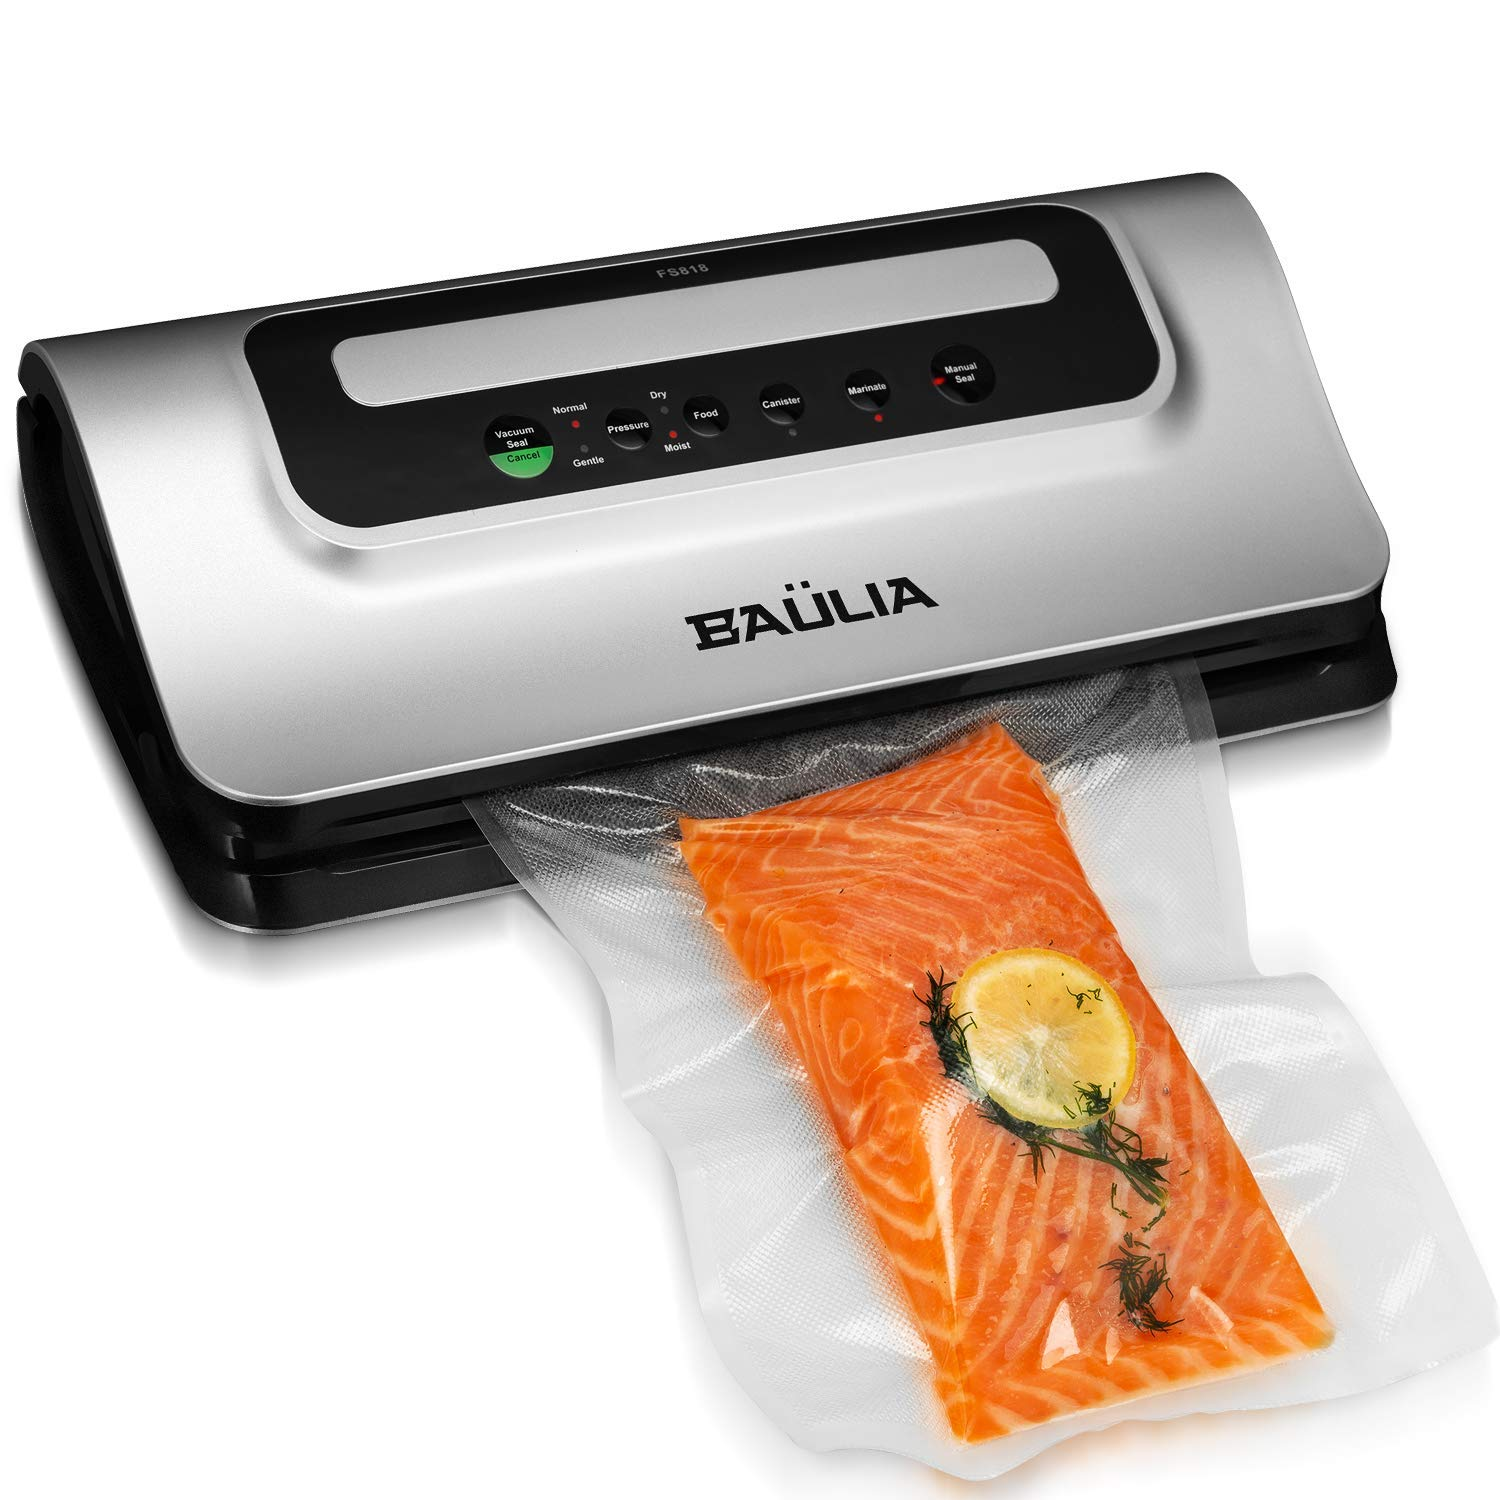 Baulia Automatic Vacuum Food Sealer - Air Sealing Machine for Food Preservation, Compact Design, Silver by Baulia